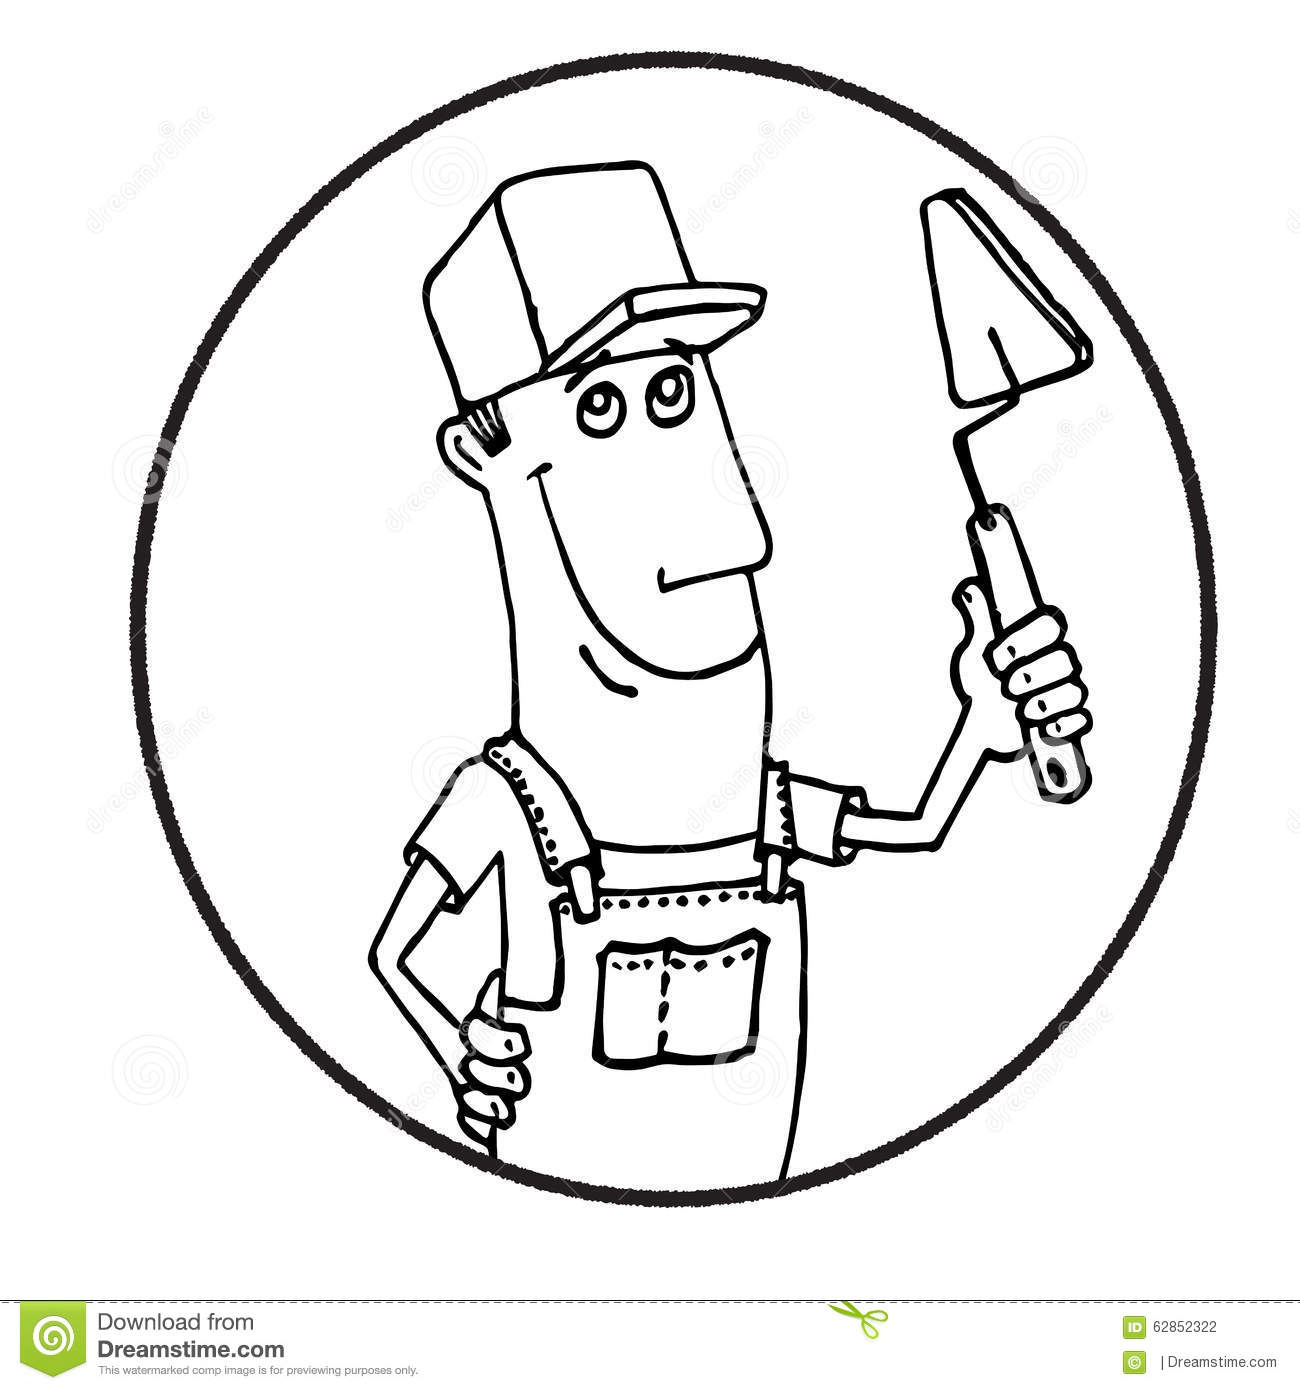 Cartoon Construction Worker Logo Vector Illustration